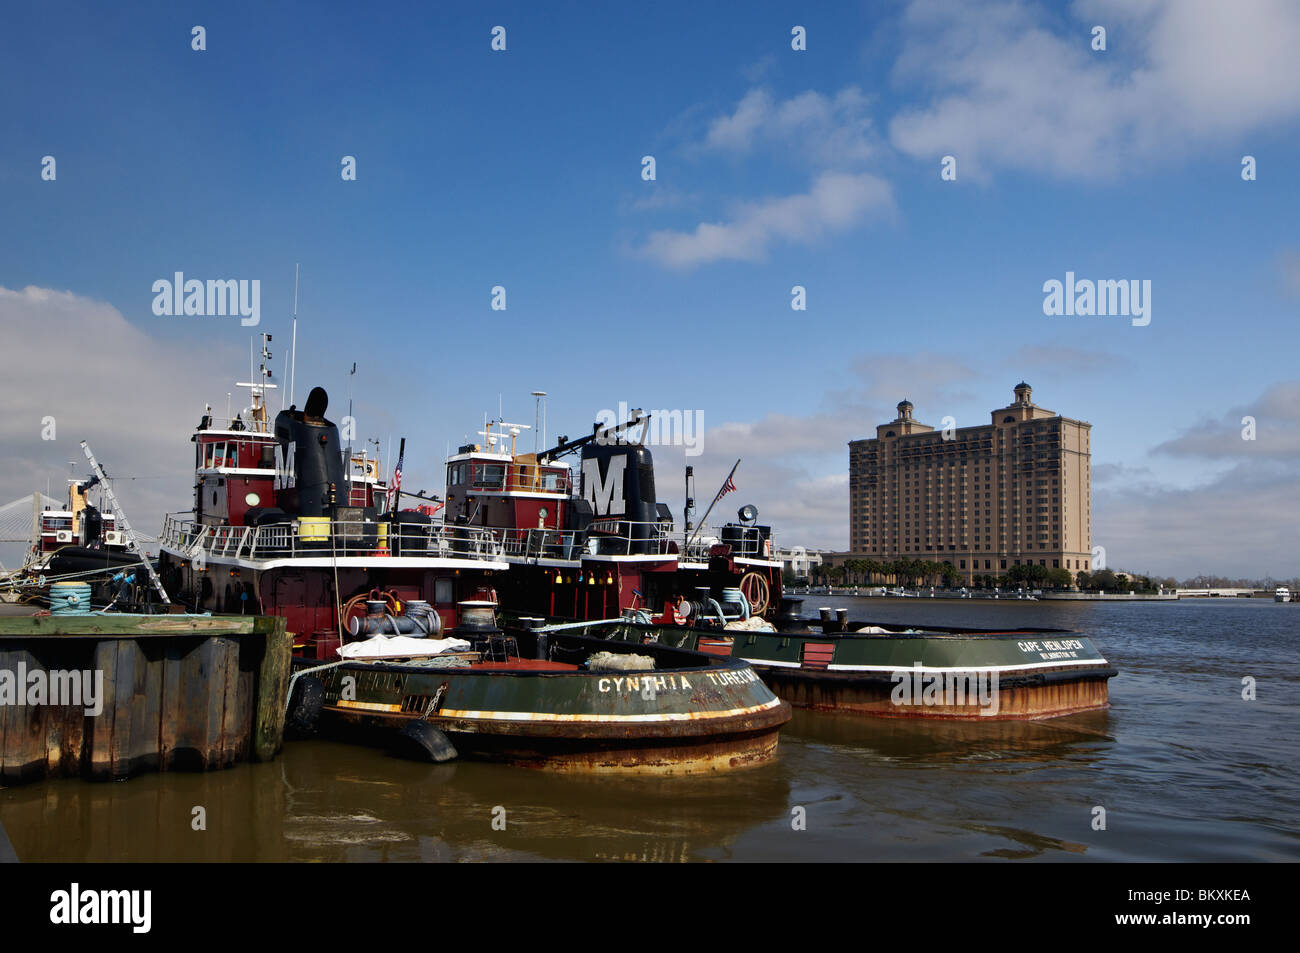 Tug Boats Docked near River Street on the Savannah River and View of Hutchinson Island in Savannah, Georgia - Stock Image